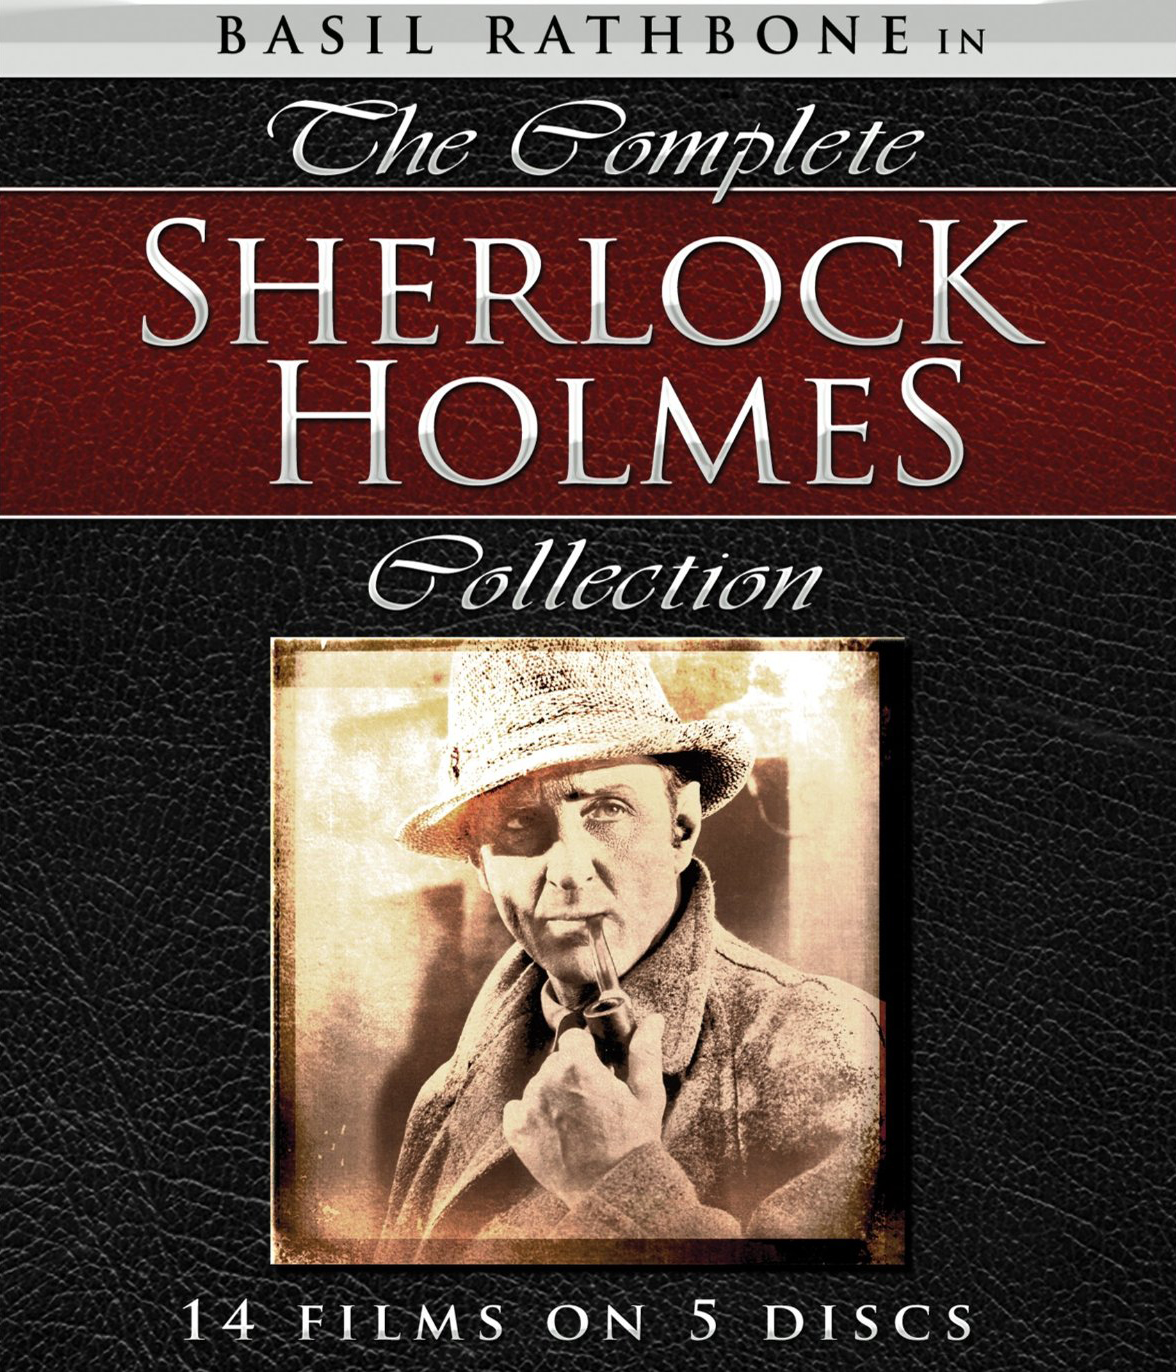 ������ �����: ������ ��������� (1939-1946) - Sherlock Holmes- The Complete Collection